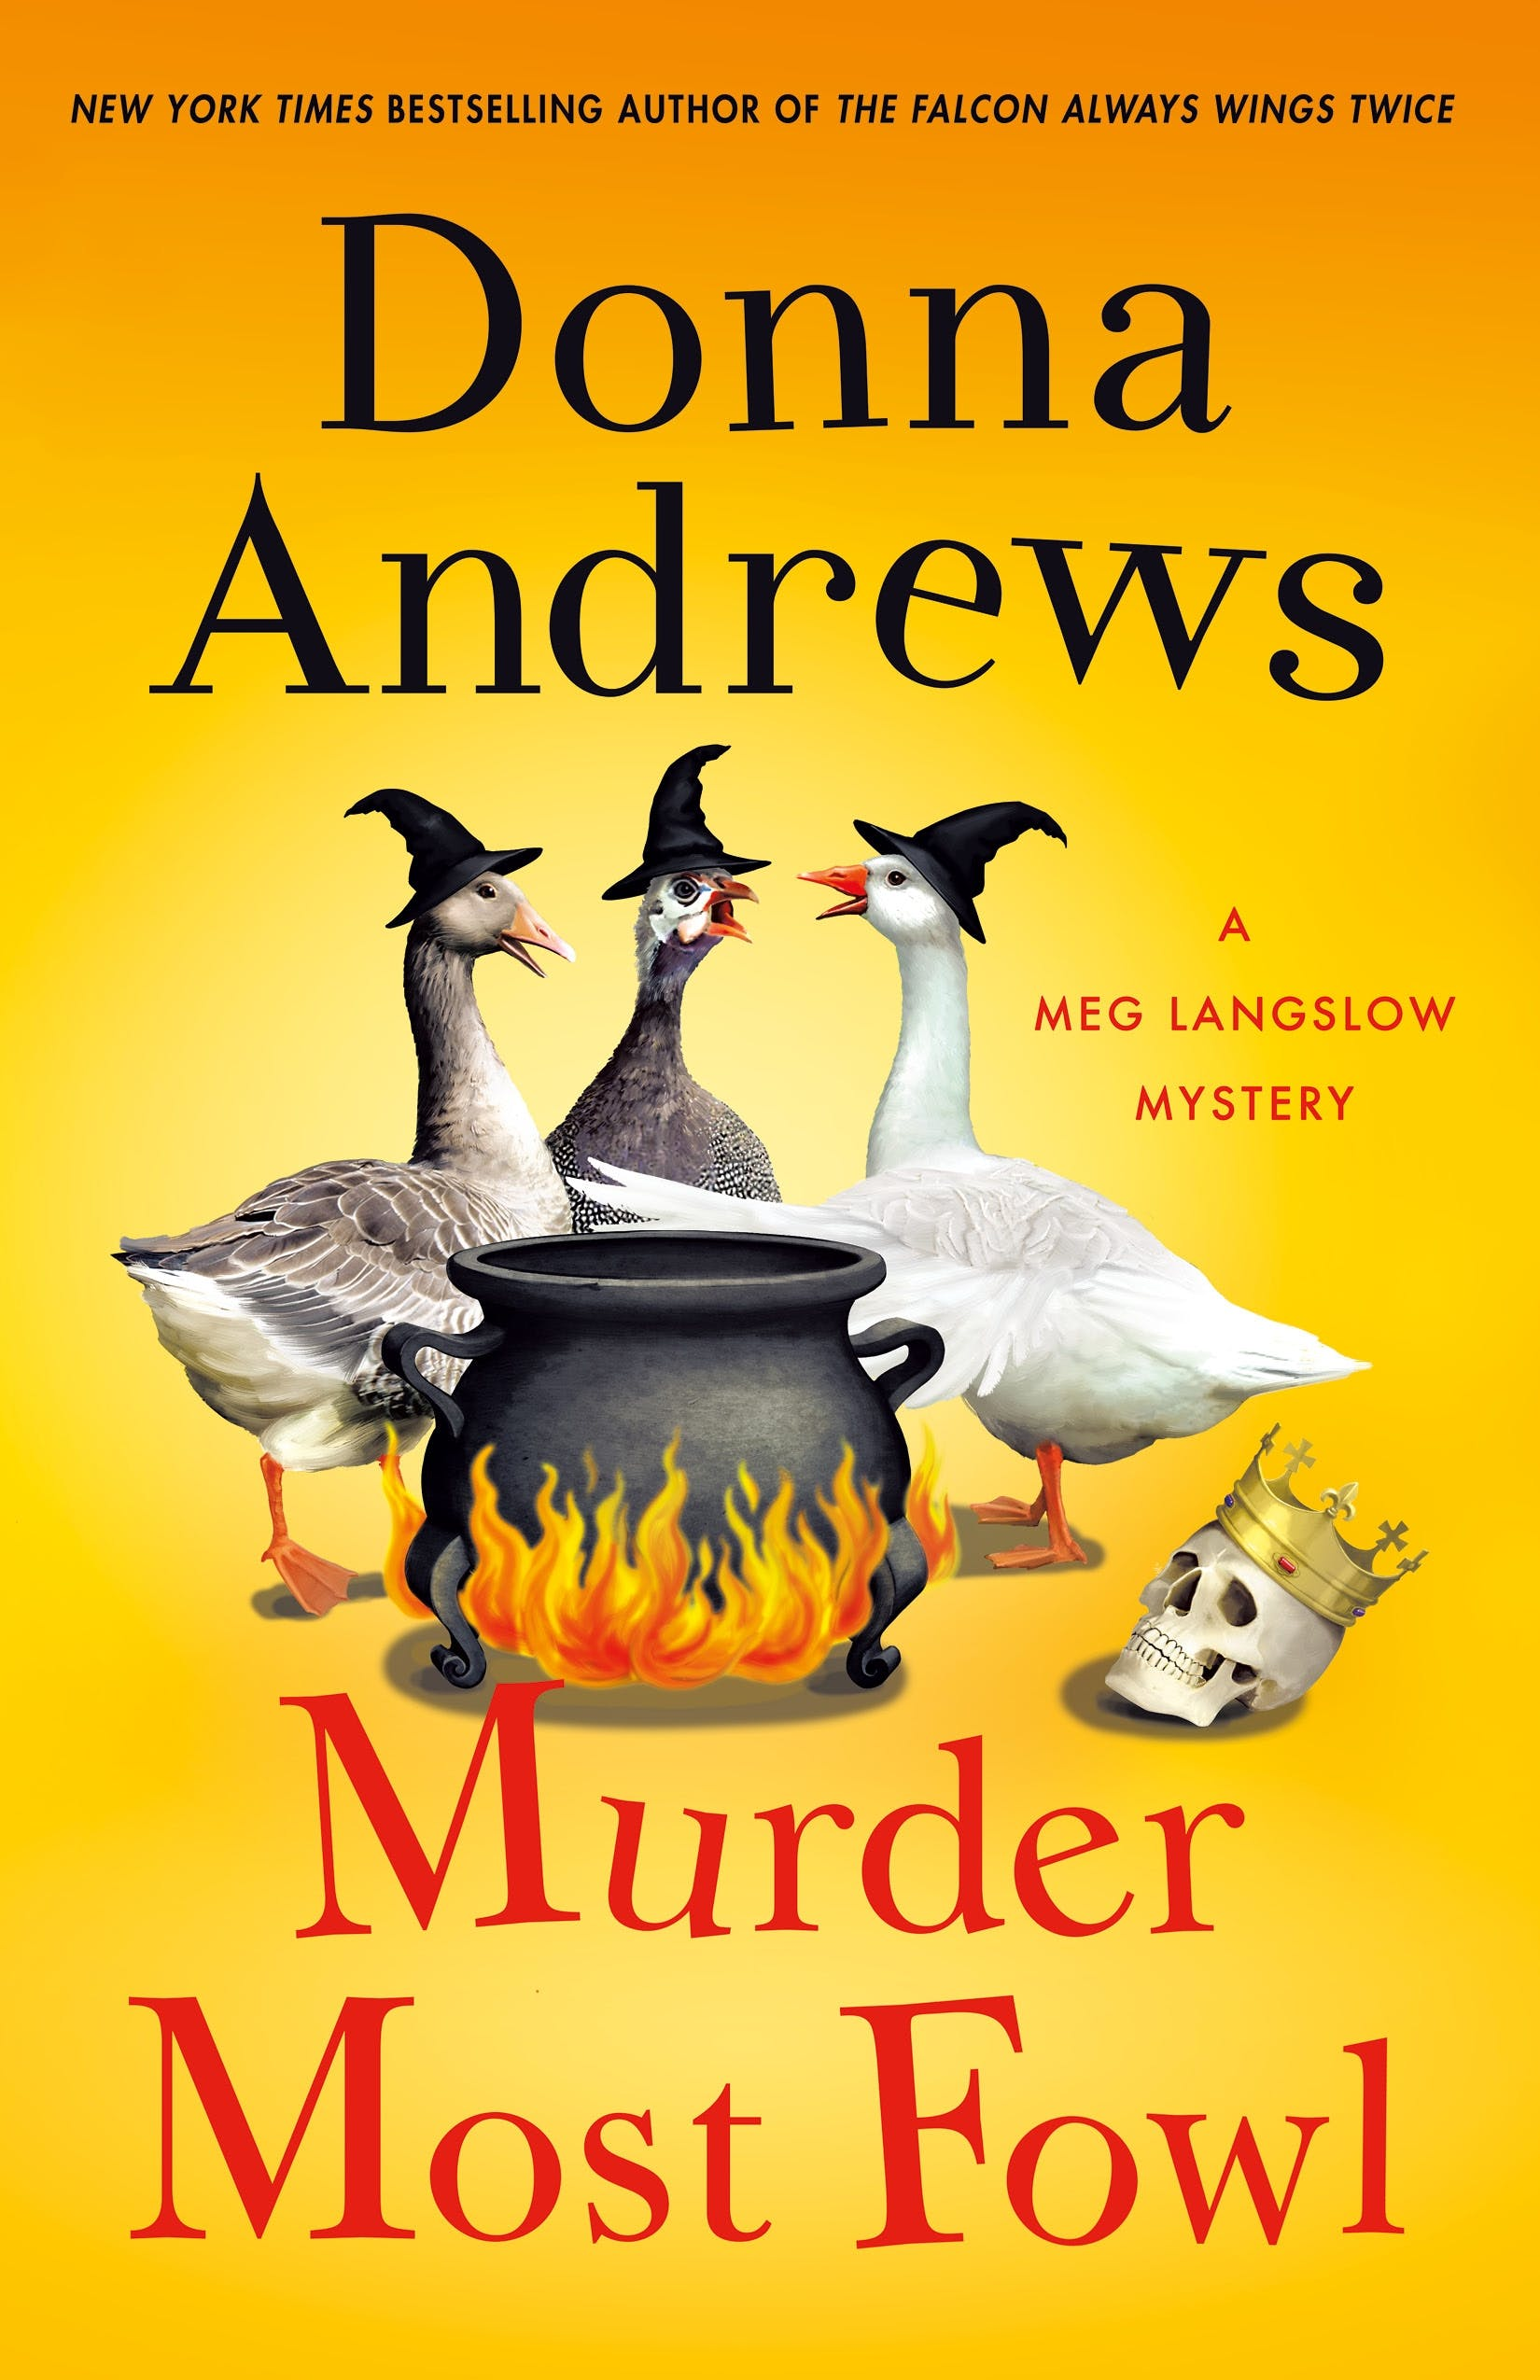 Image of Murder Most Fowl